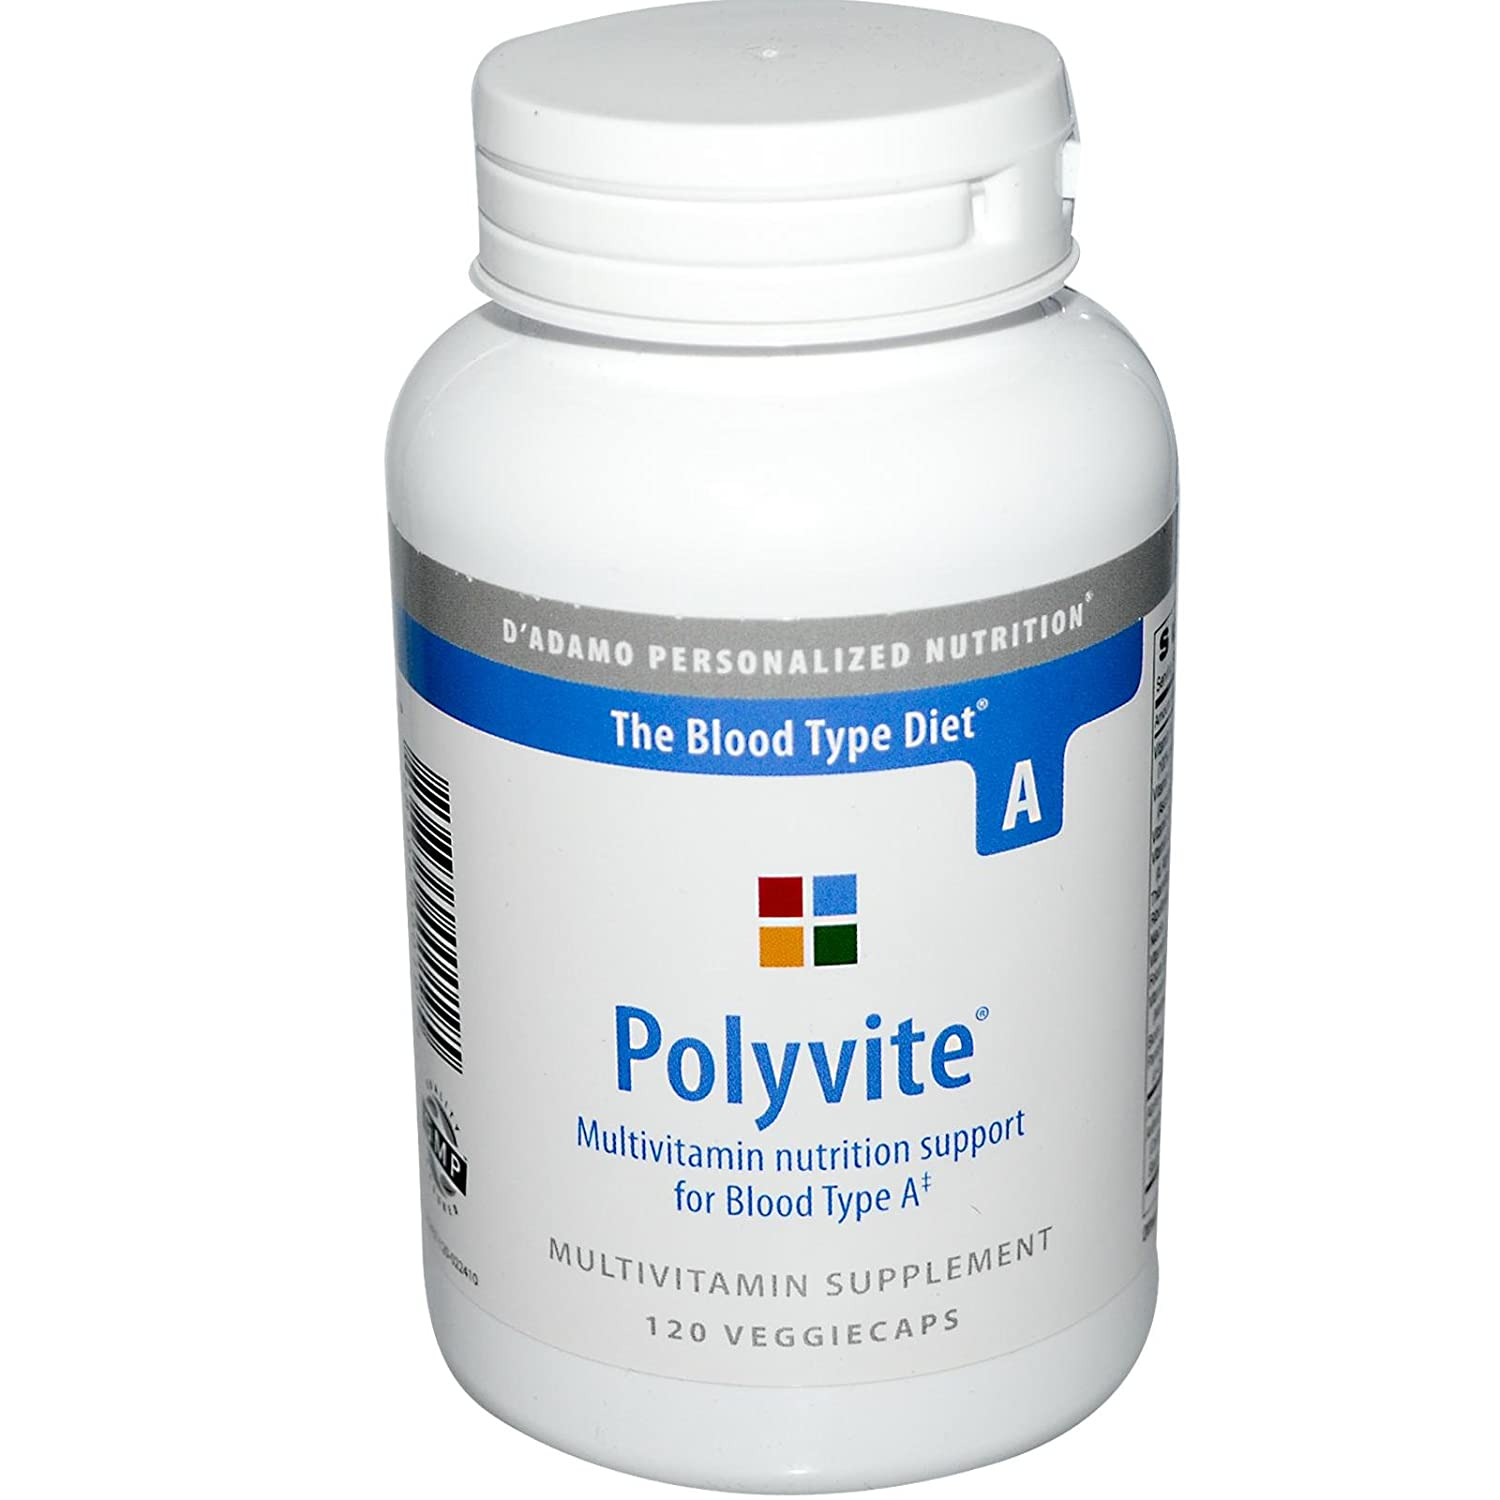 D Adamo Personalized Nutrition Polyvite A, 120 Count